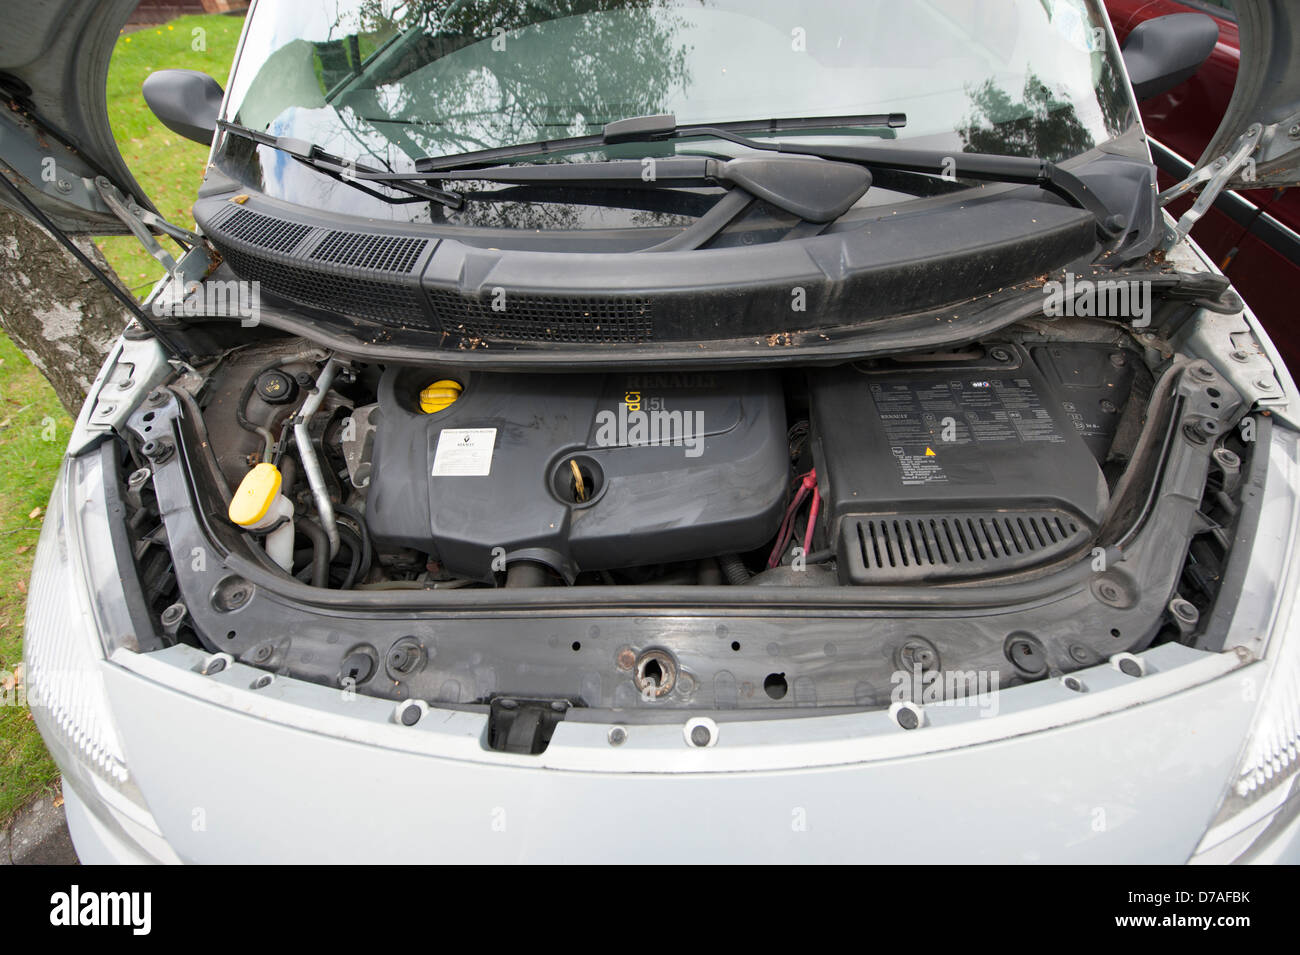 Engine bay stock photos engine bay stock images alamy open engine bay compartment renault scenic car stock image pooptronica